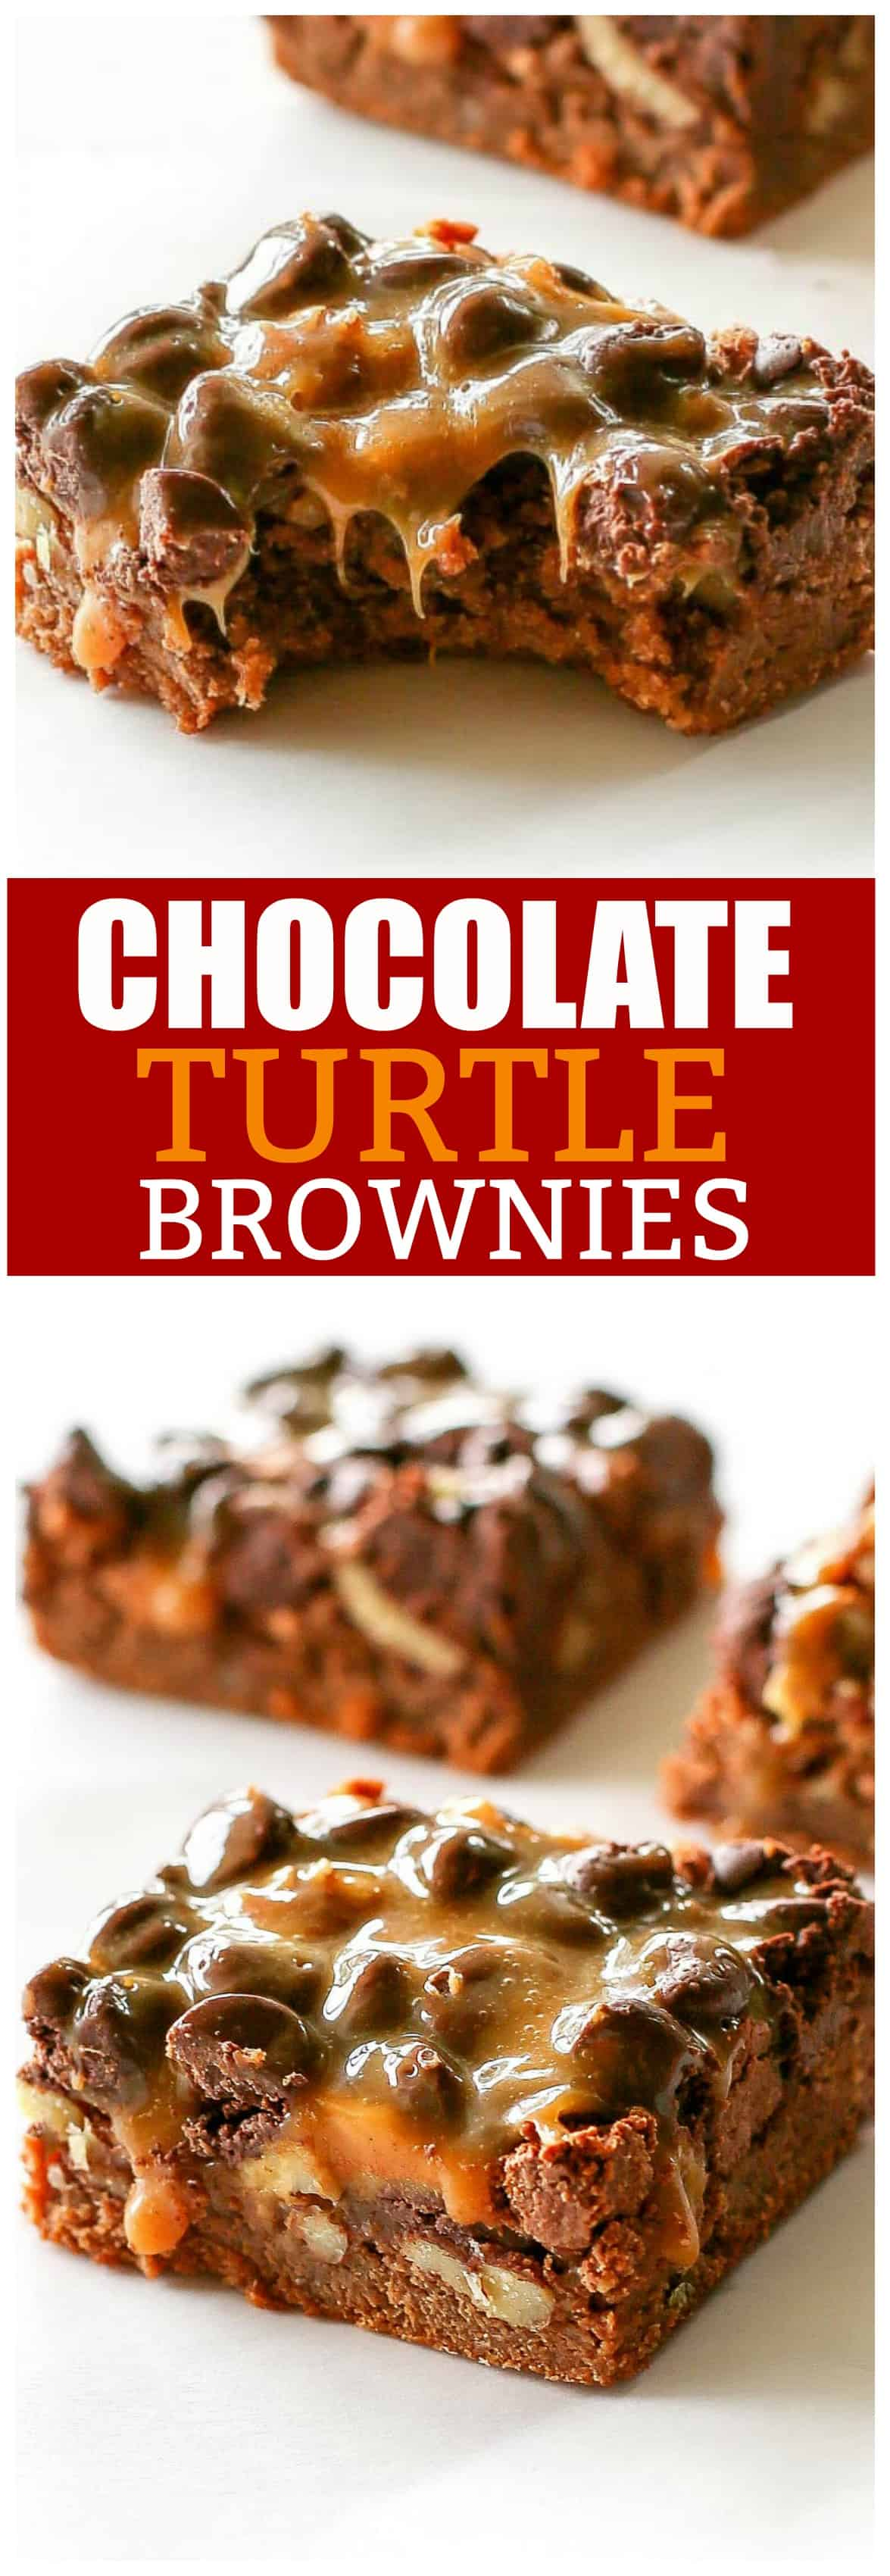 Chocolate Turtle Brownies are rich chocolate brownies with gooey caramel, nuts, and more chocolate. If you  need a dessert for a crowd, here you go!